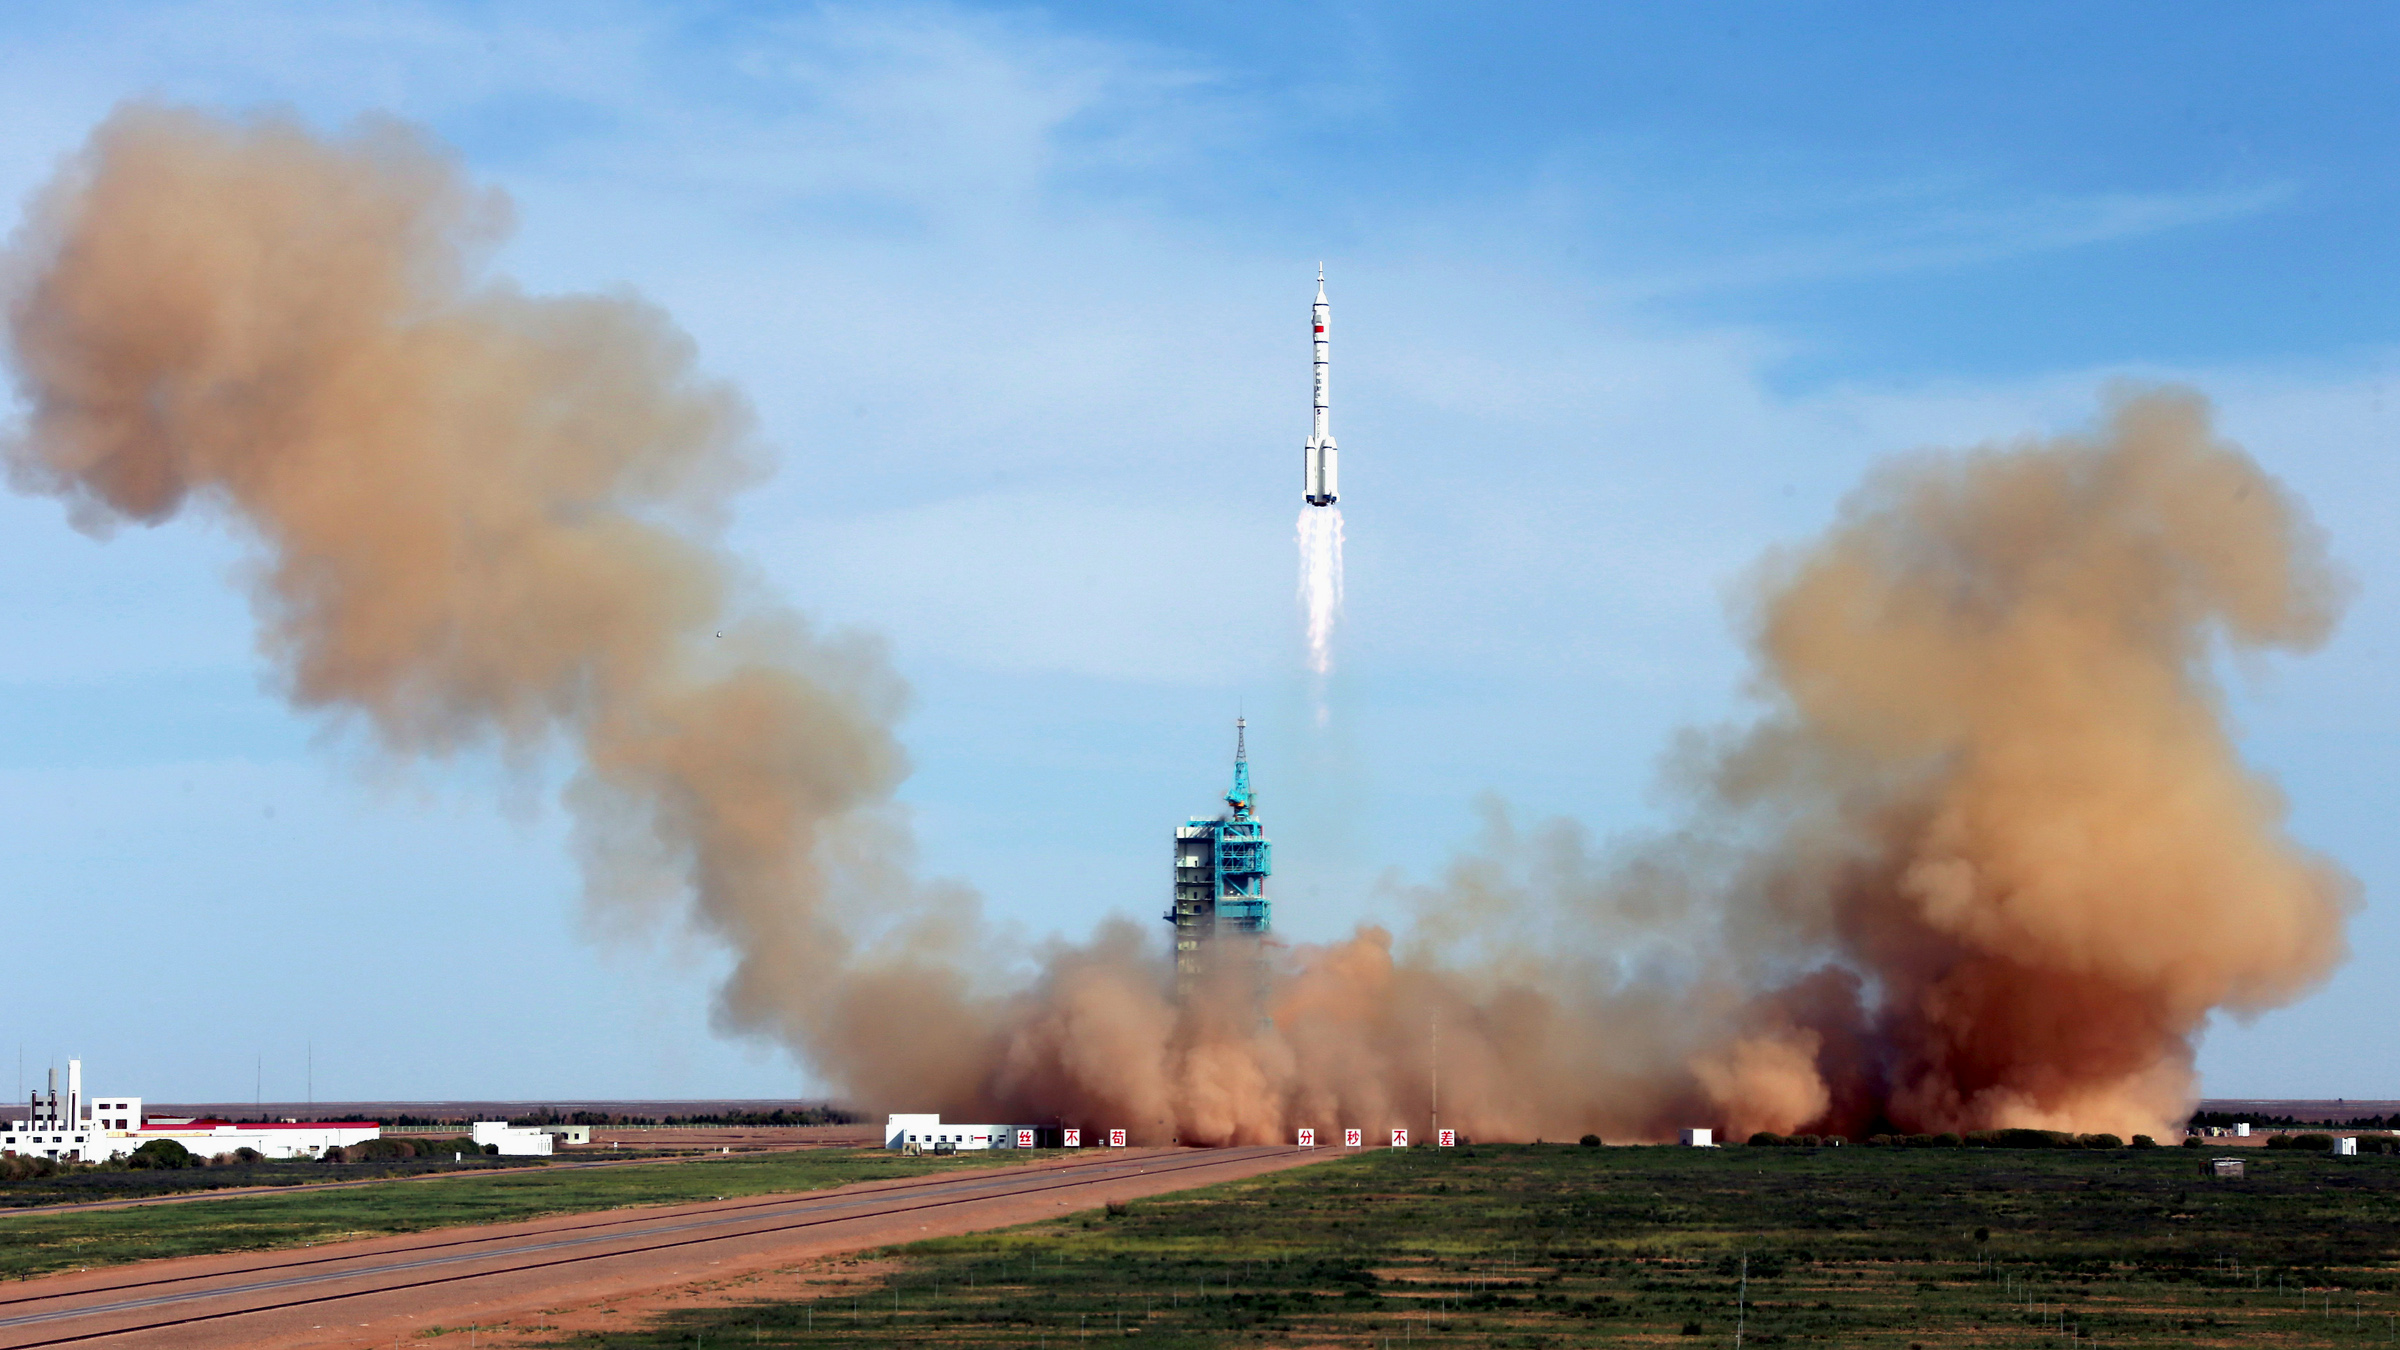 The Long March 2-F rocket loaded with Shenzhou-10 manned spacecraft carrying Chinese astronauts Nie Haisheng, Zhang Xiaoguang and Wang Yaping lifts off from the launch pad in the Jiuquan Satellite Launch Center, Gansu province June 11, 2013. A Chinese manned spacecraft blasted off with three astronauts on board on Tuesday on a 15-day mission to an experimental space lab in the latest step towards the development of a space station.